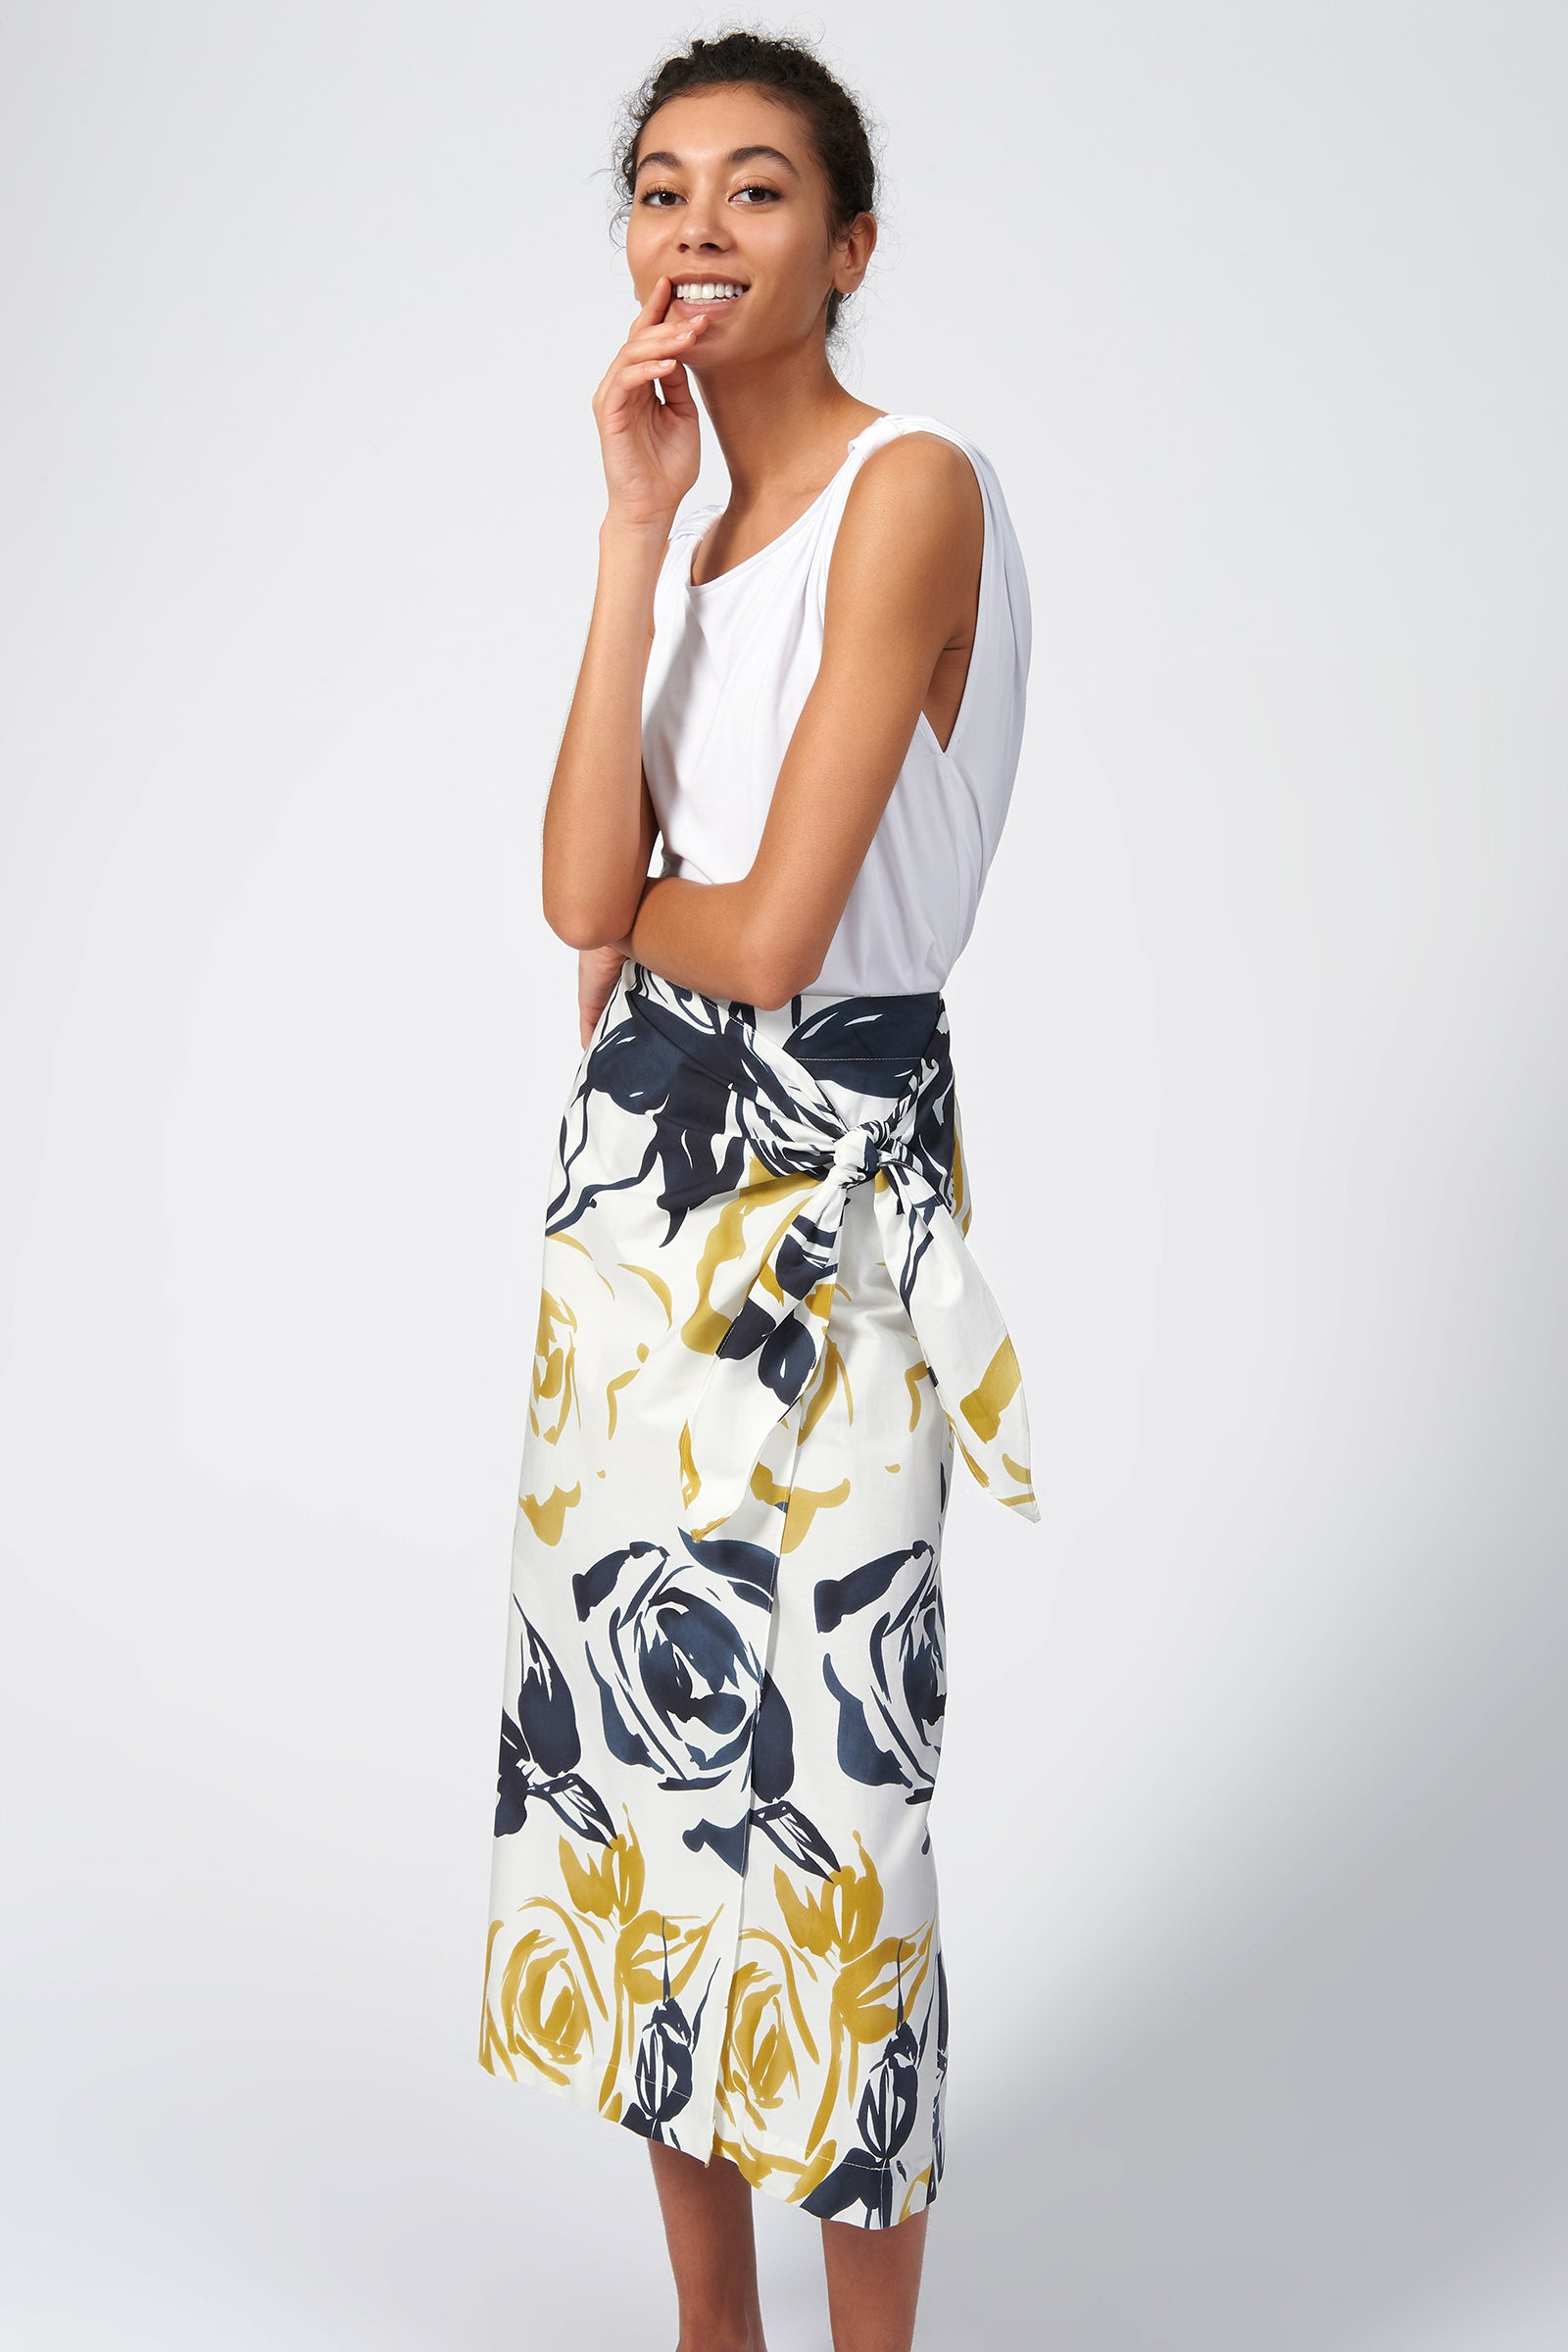 Kal Rieman Summer Wrap Skirt in Watercolor Floral on Model Full Front Side View